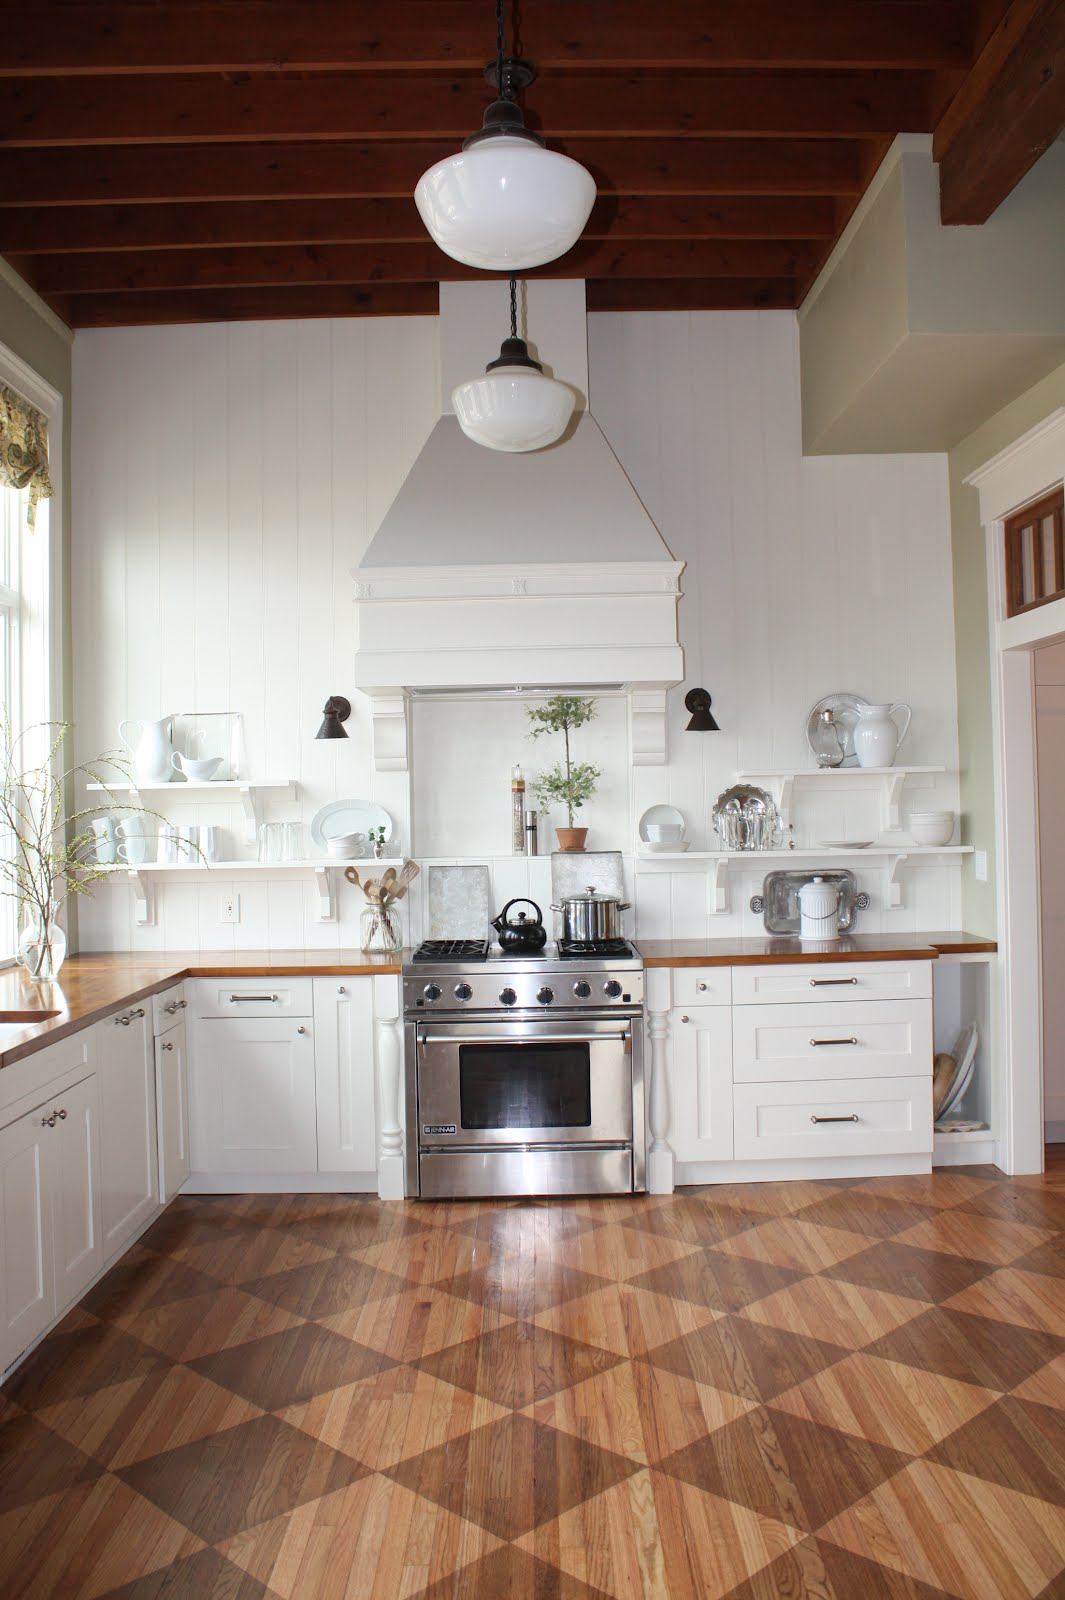 This Old Church House: Kitchen Update And This Old Church House Does ...